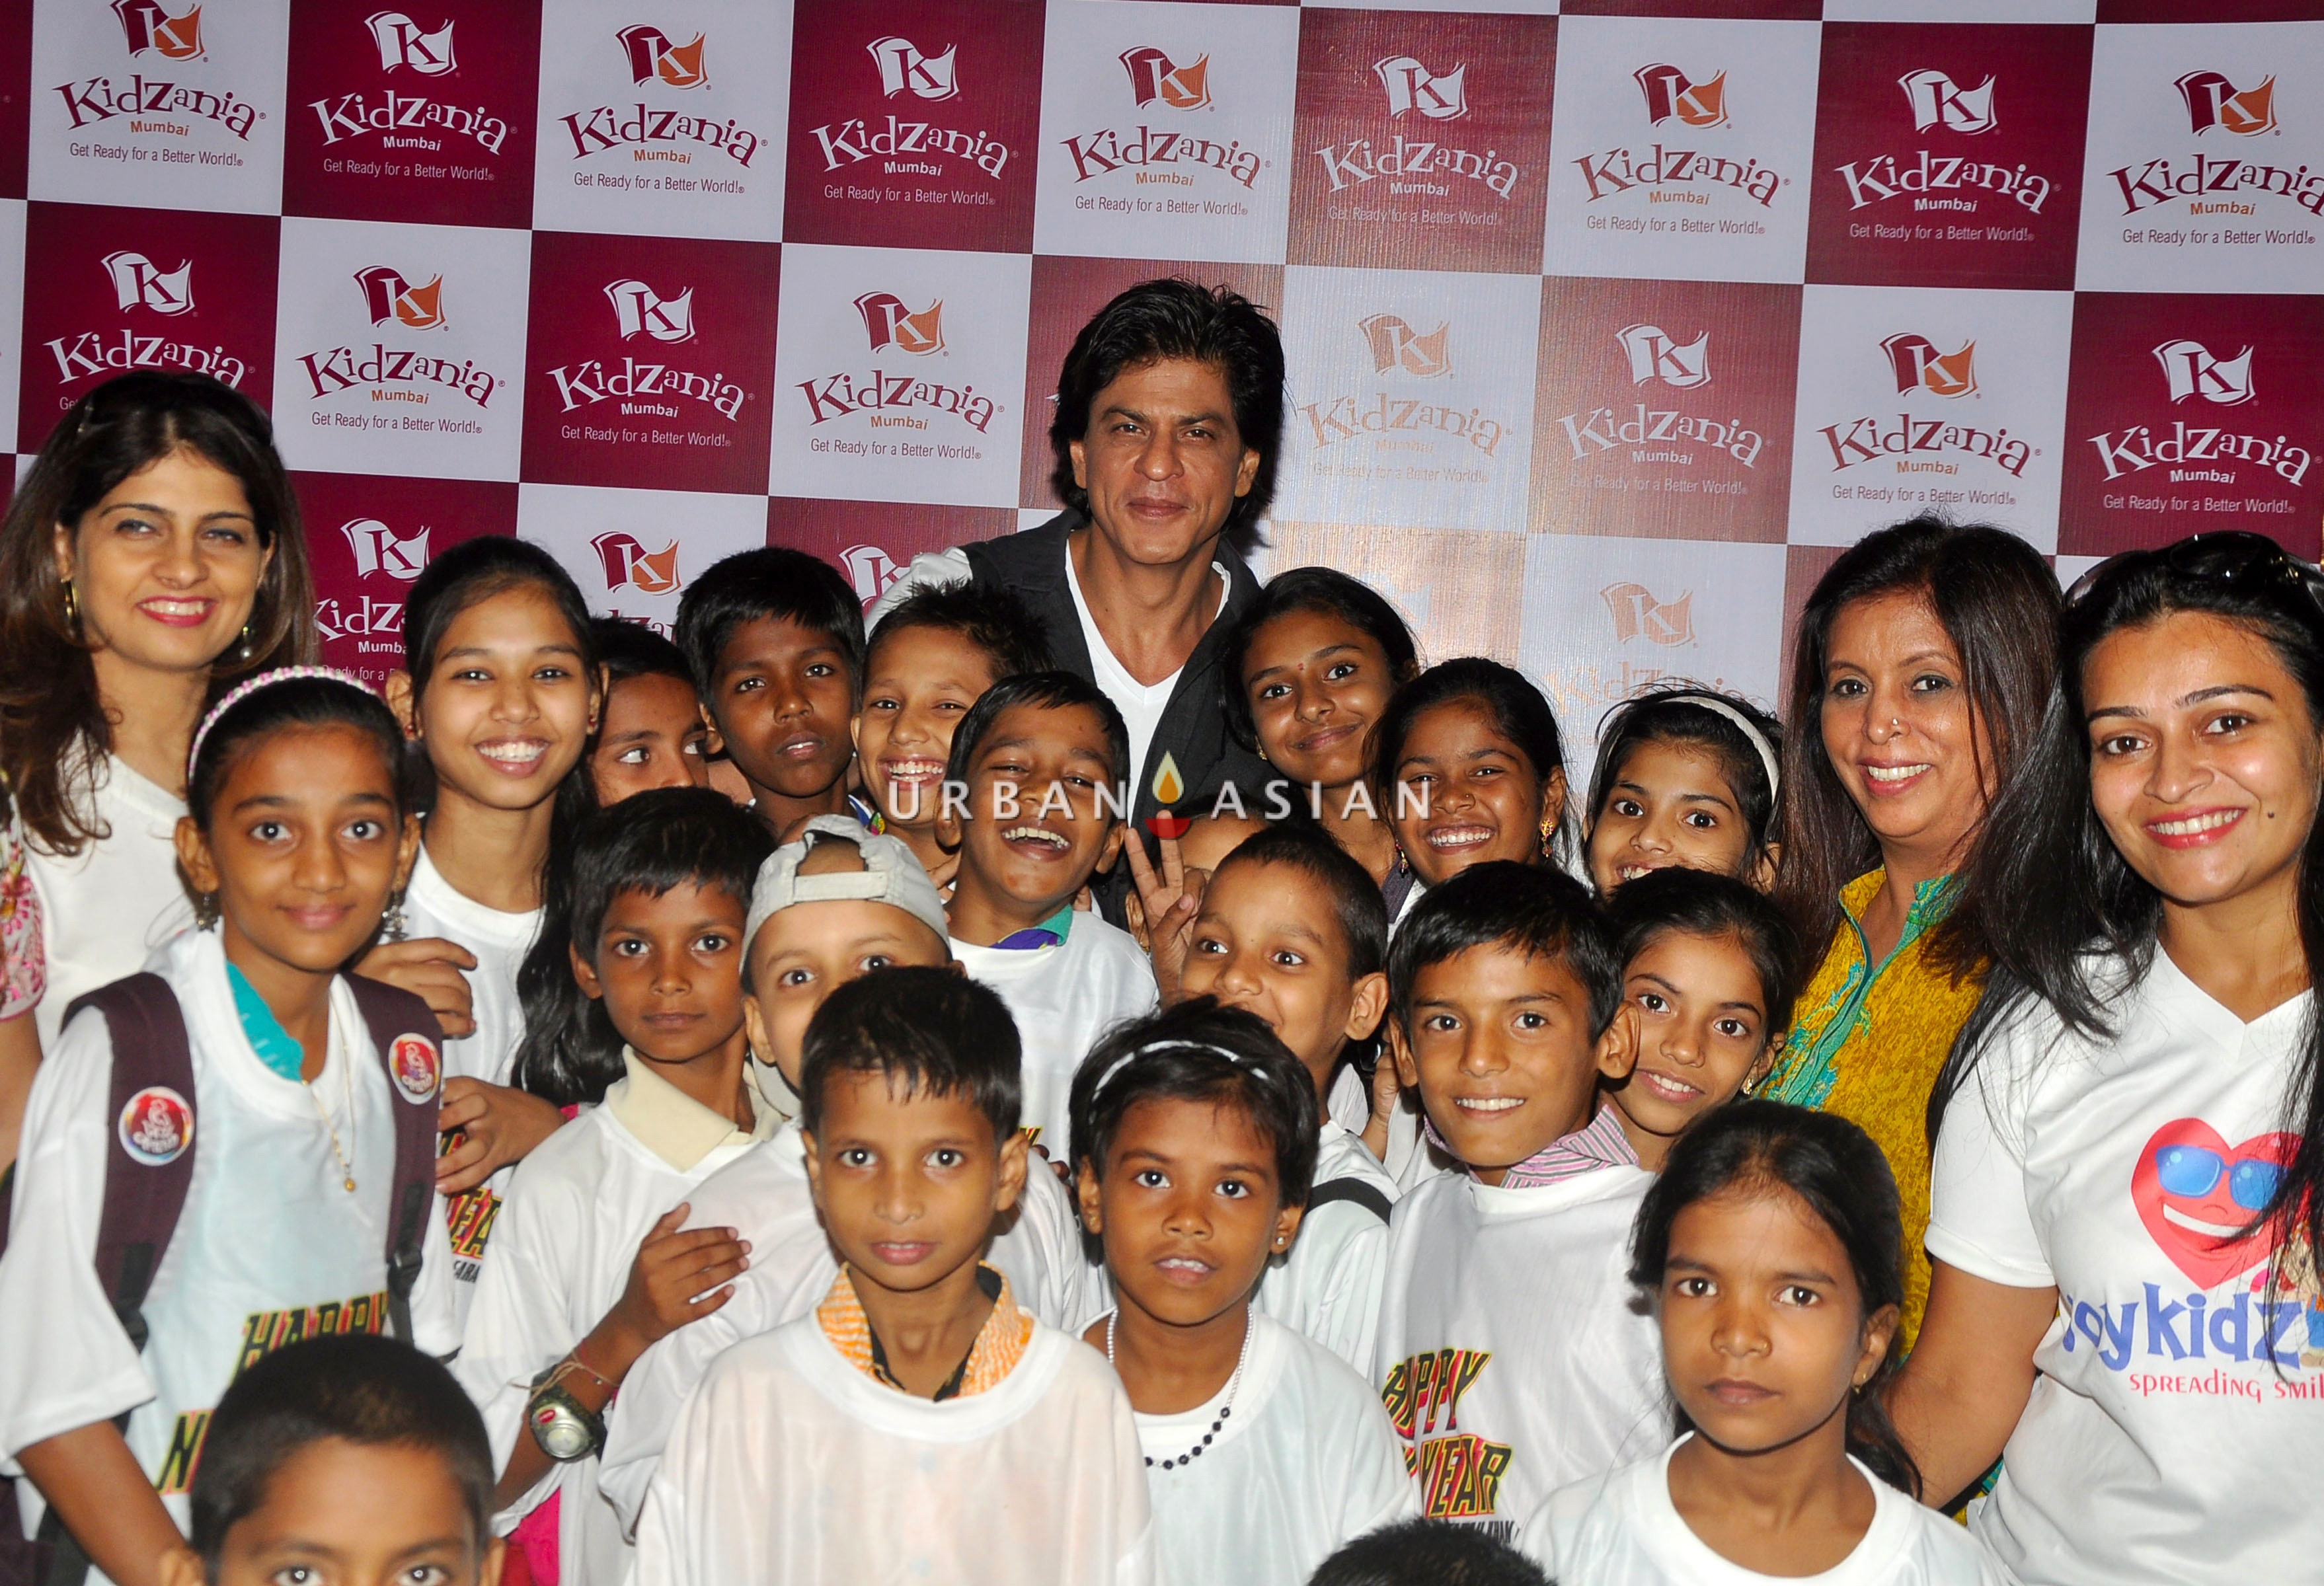 SRK WITH THE CHILDREN OF ANGEL XPRESS FOUNDATION AT KIDZANIA DSC_6444